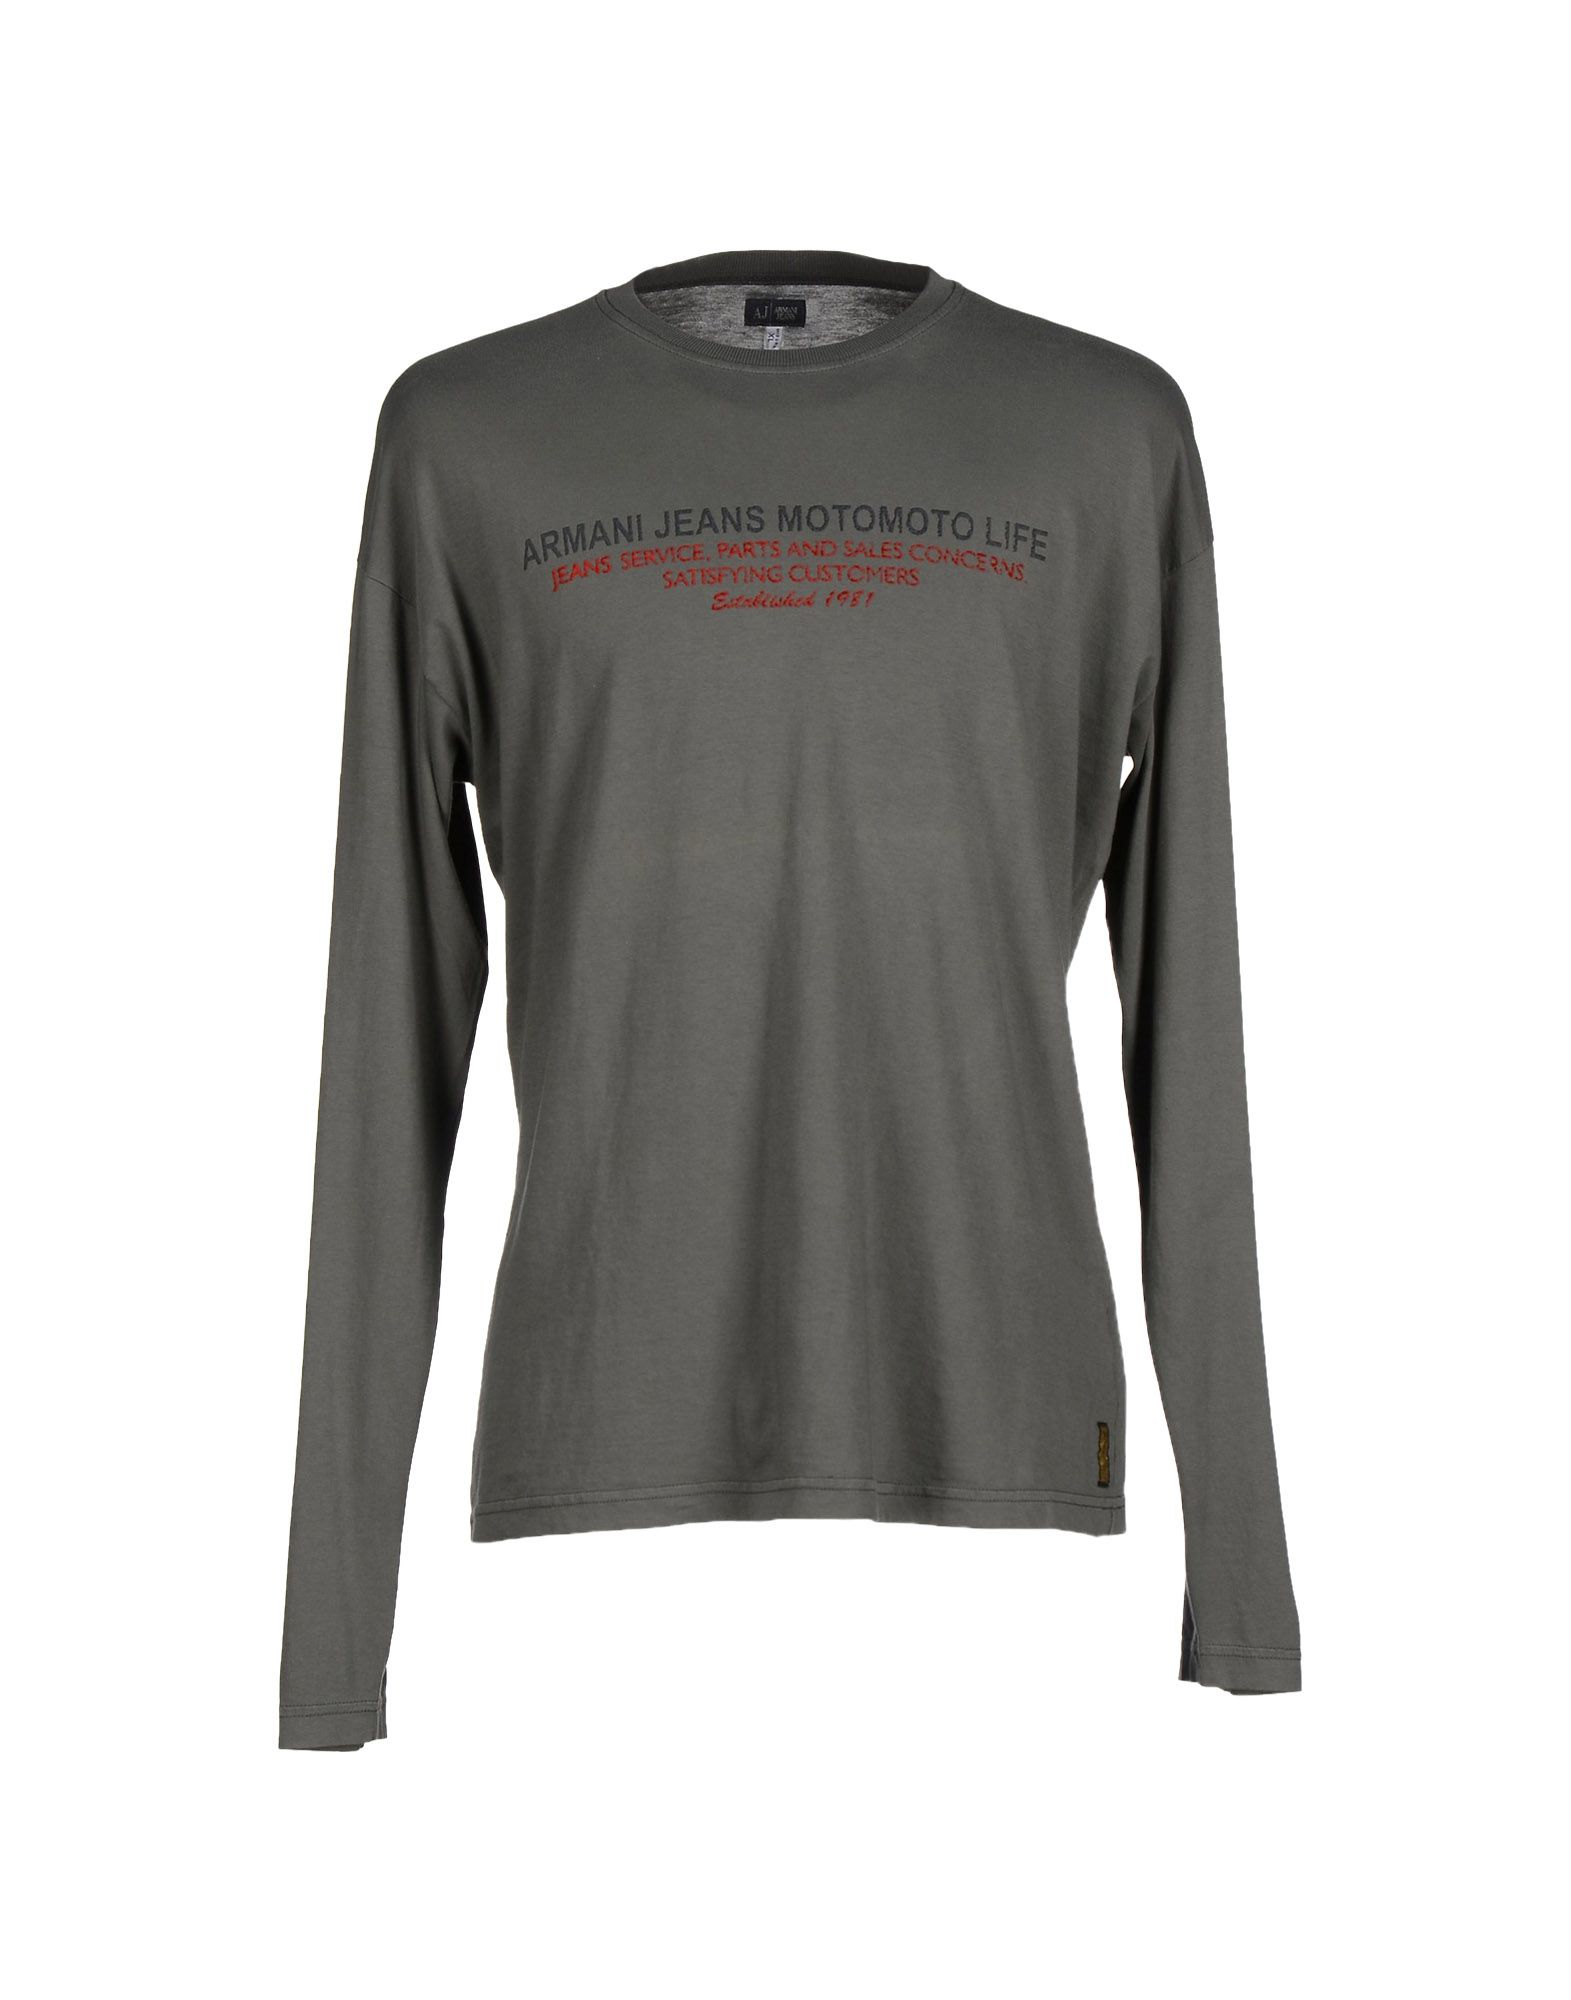 armani jeans t shirt in gray for men grey lyst. Black Bedroom Furniture Sets. Home Design Ideas